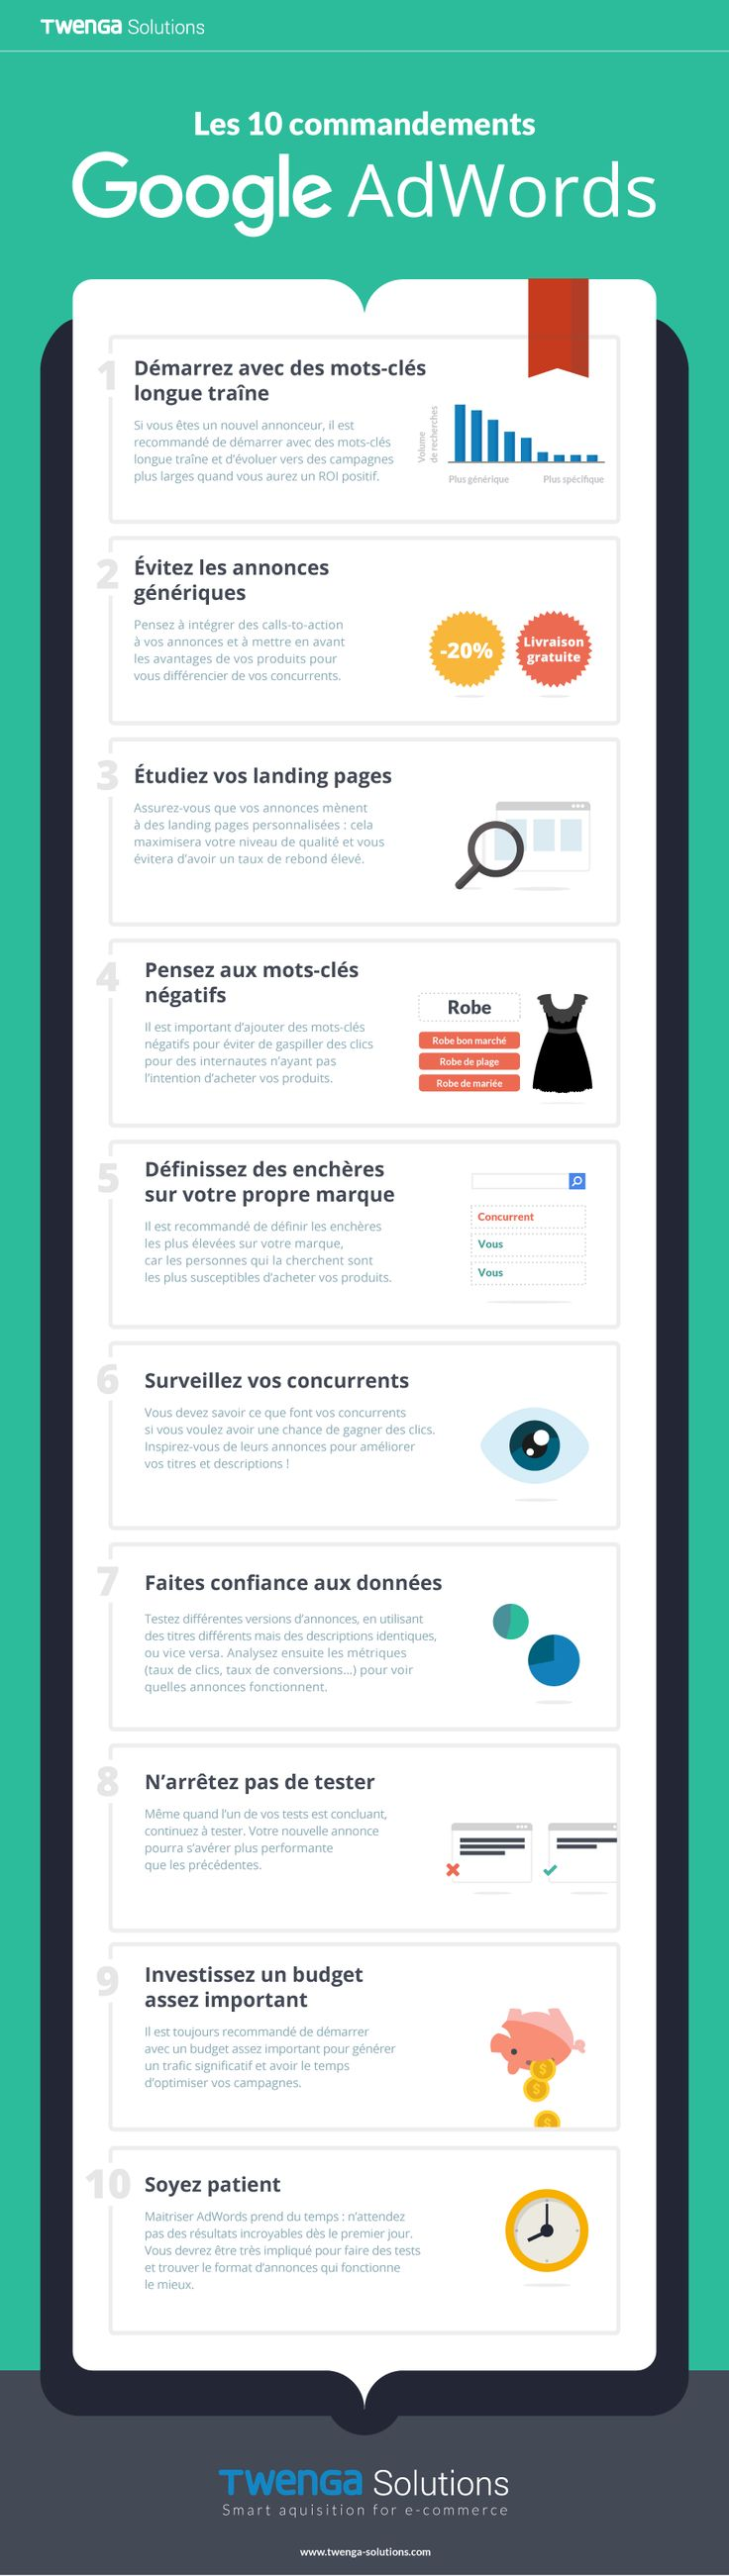 #Infographie : les 10 commandements Google #AdWords  #webmarketing